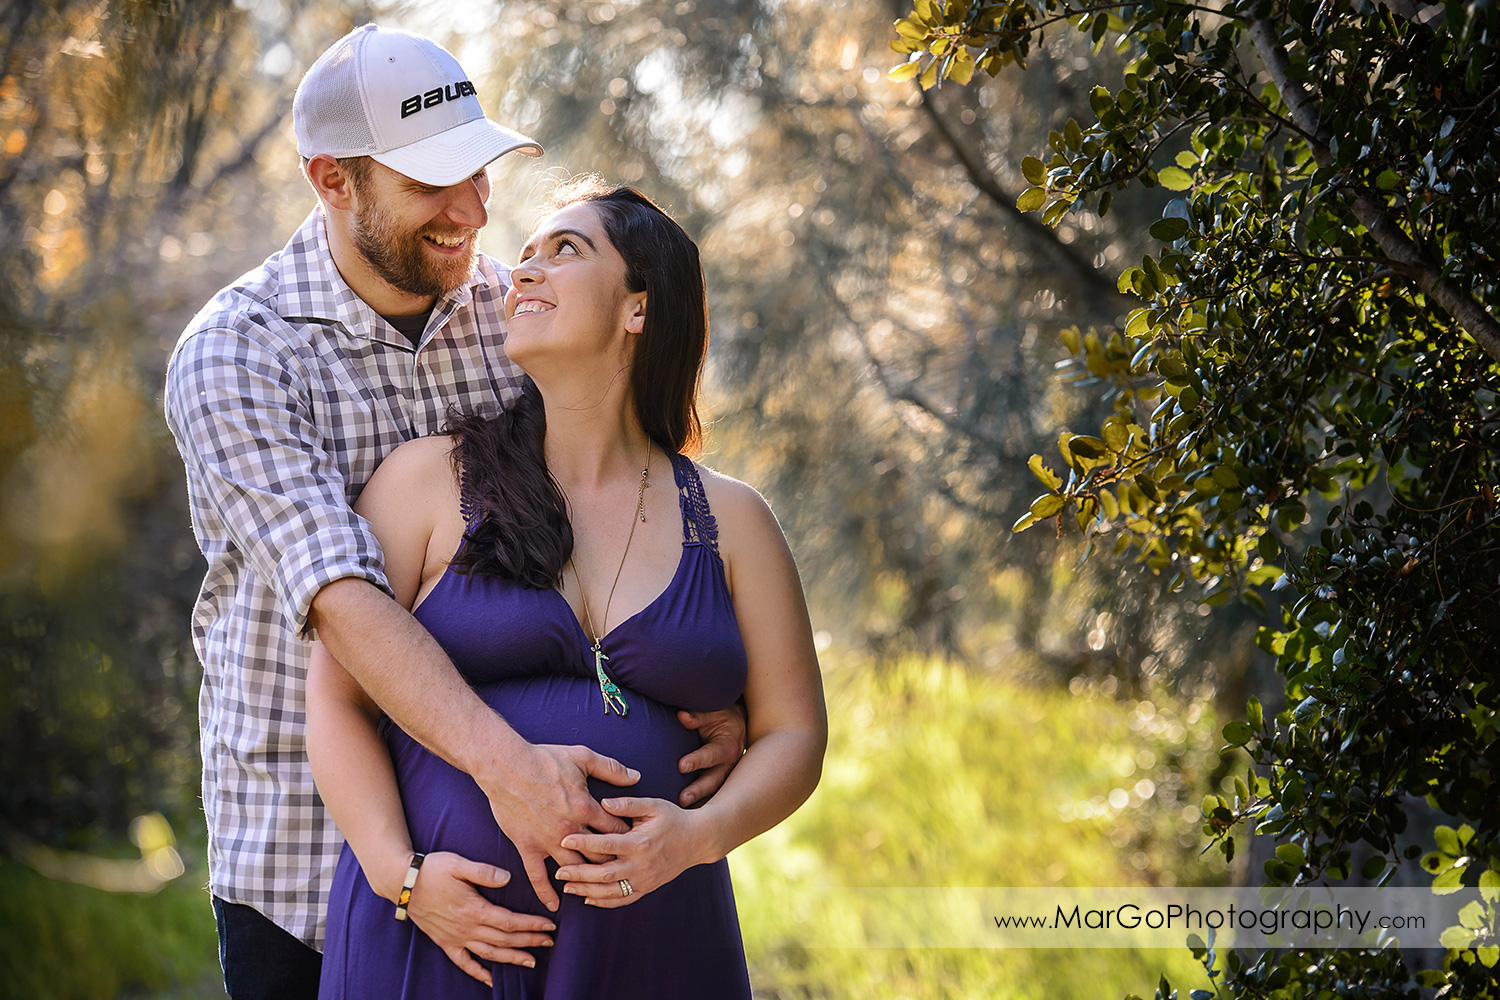 portrait of man in checkered shirt and pregnant woman in long violet dress looking at each other during maternity session at Ulistac Natural Area in Santa Clara